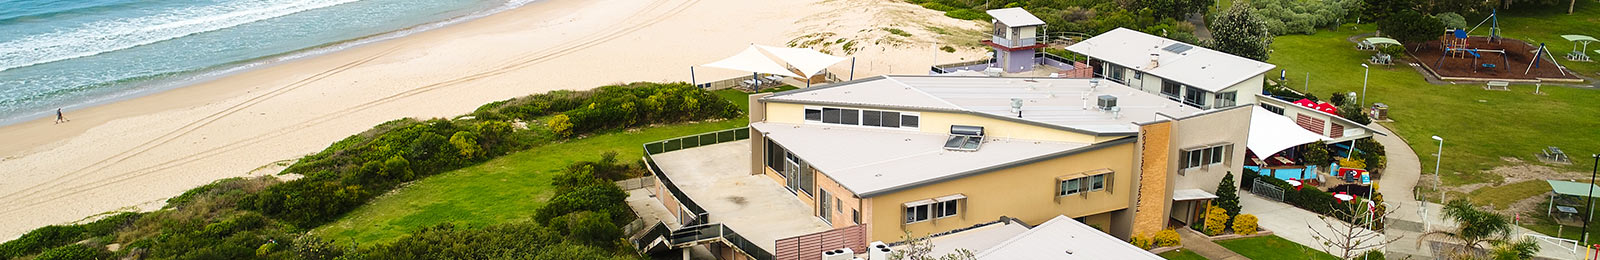 Fingal Beach Surf Lifesaving Club